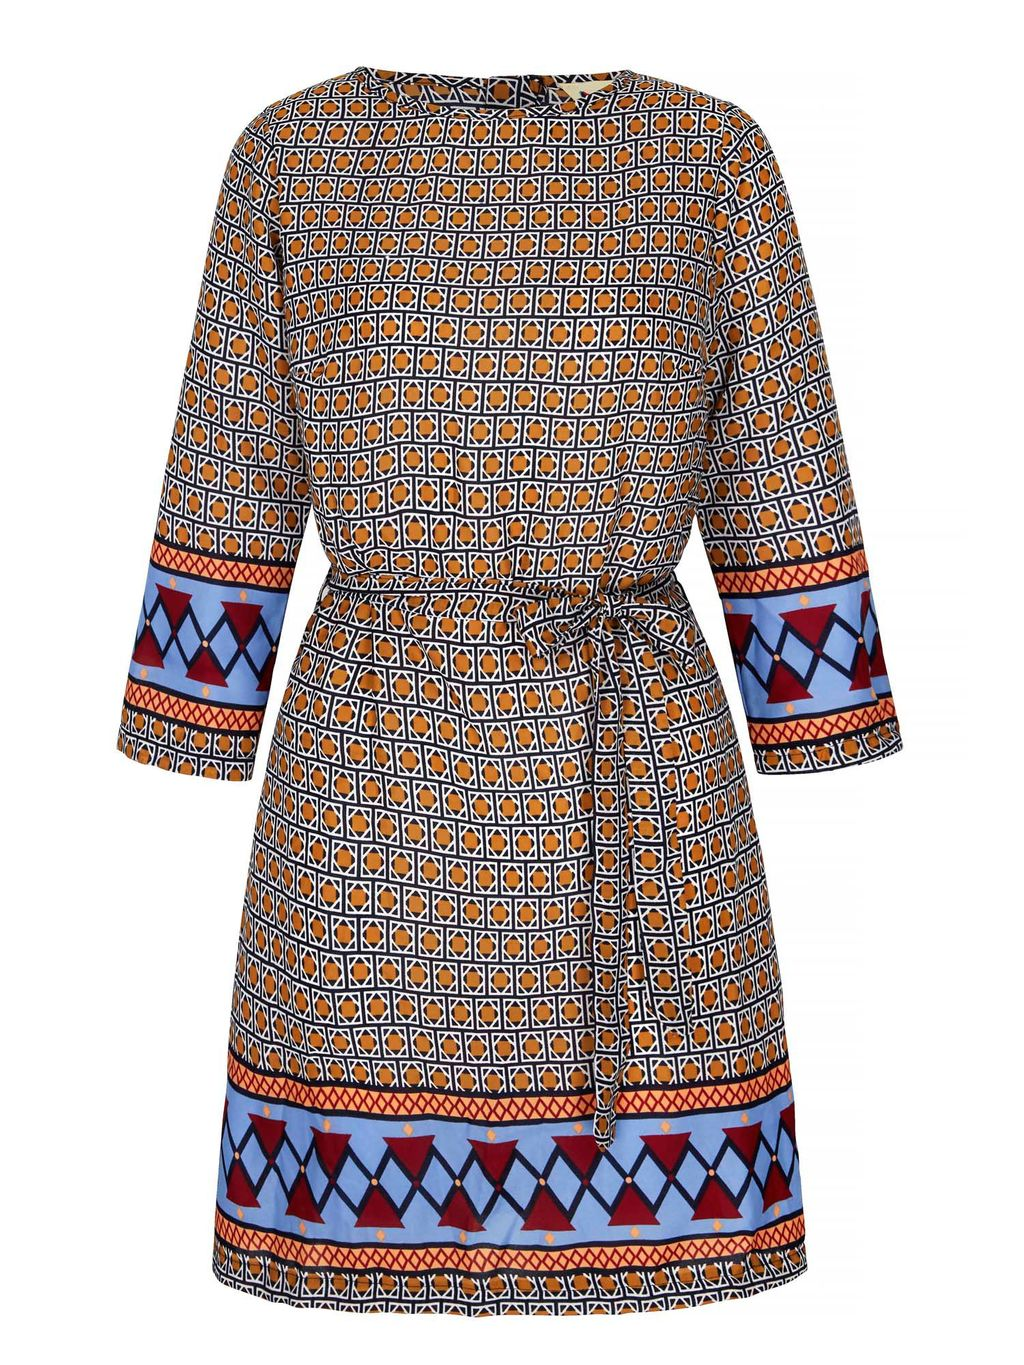 Tile Print Tunic Dress, Multi Coloured - style: shift; length: mid thigh; waist detail: belted waist/tie at waist/drawstring; secondary colour: pale blue; predominant colour: bright orange; occasions: casual, creative work; fit: soft a-line; fibres: polyester/polyamide - 100%; neckline: crew; sleeve length: 3/4 length; sleeve style: standard; texture group: crepes; pattern type: fabric; pattern size: light/subtle; pattern: patterned/print; multicoloured: multicoloured; season: s/s 2016; wardrobe: highlight